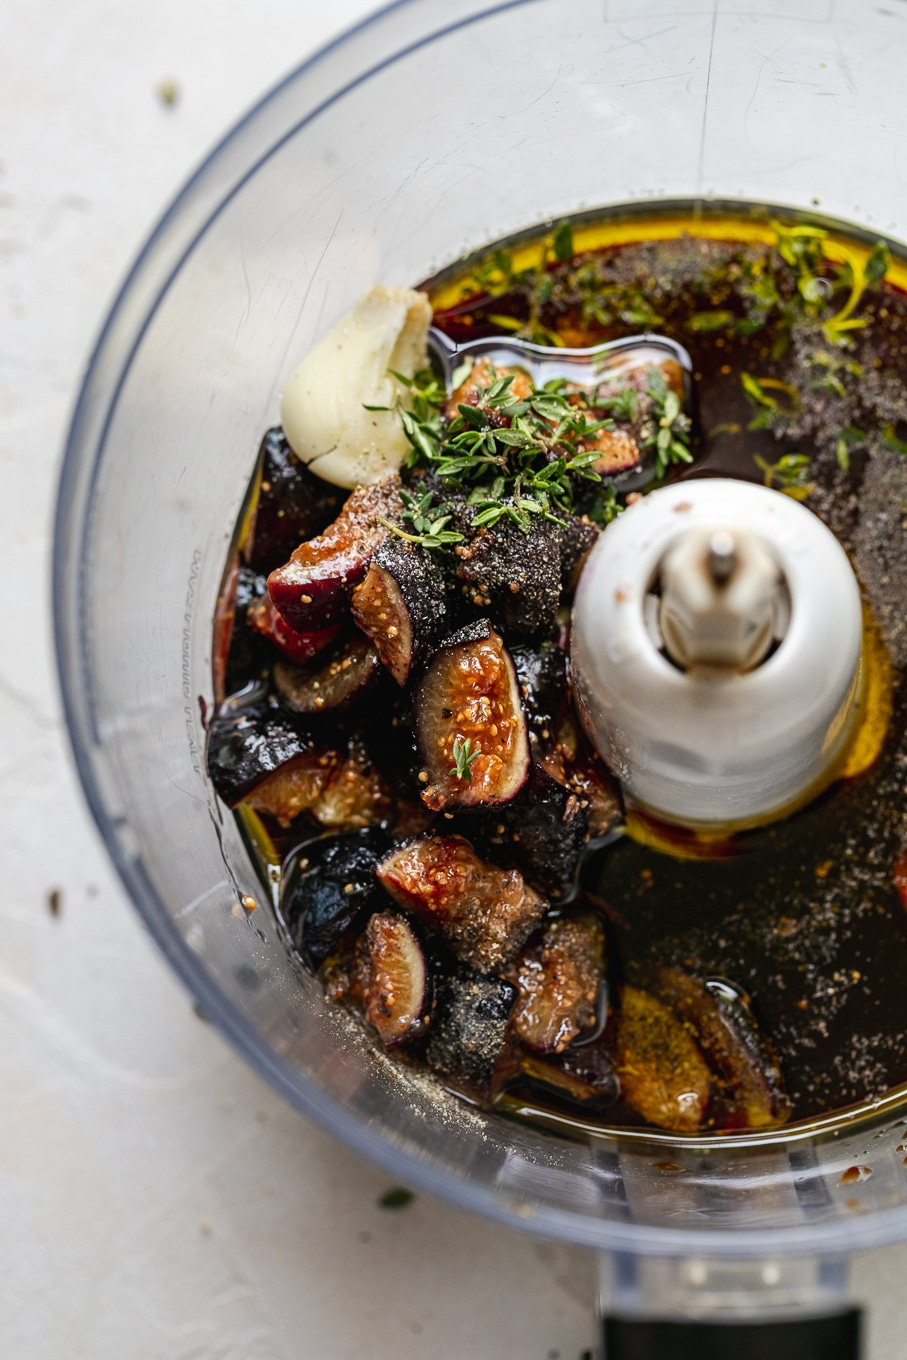 Overhead shot of a food processor filled with roasted figs, balsamic, olive oil, and herbs